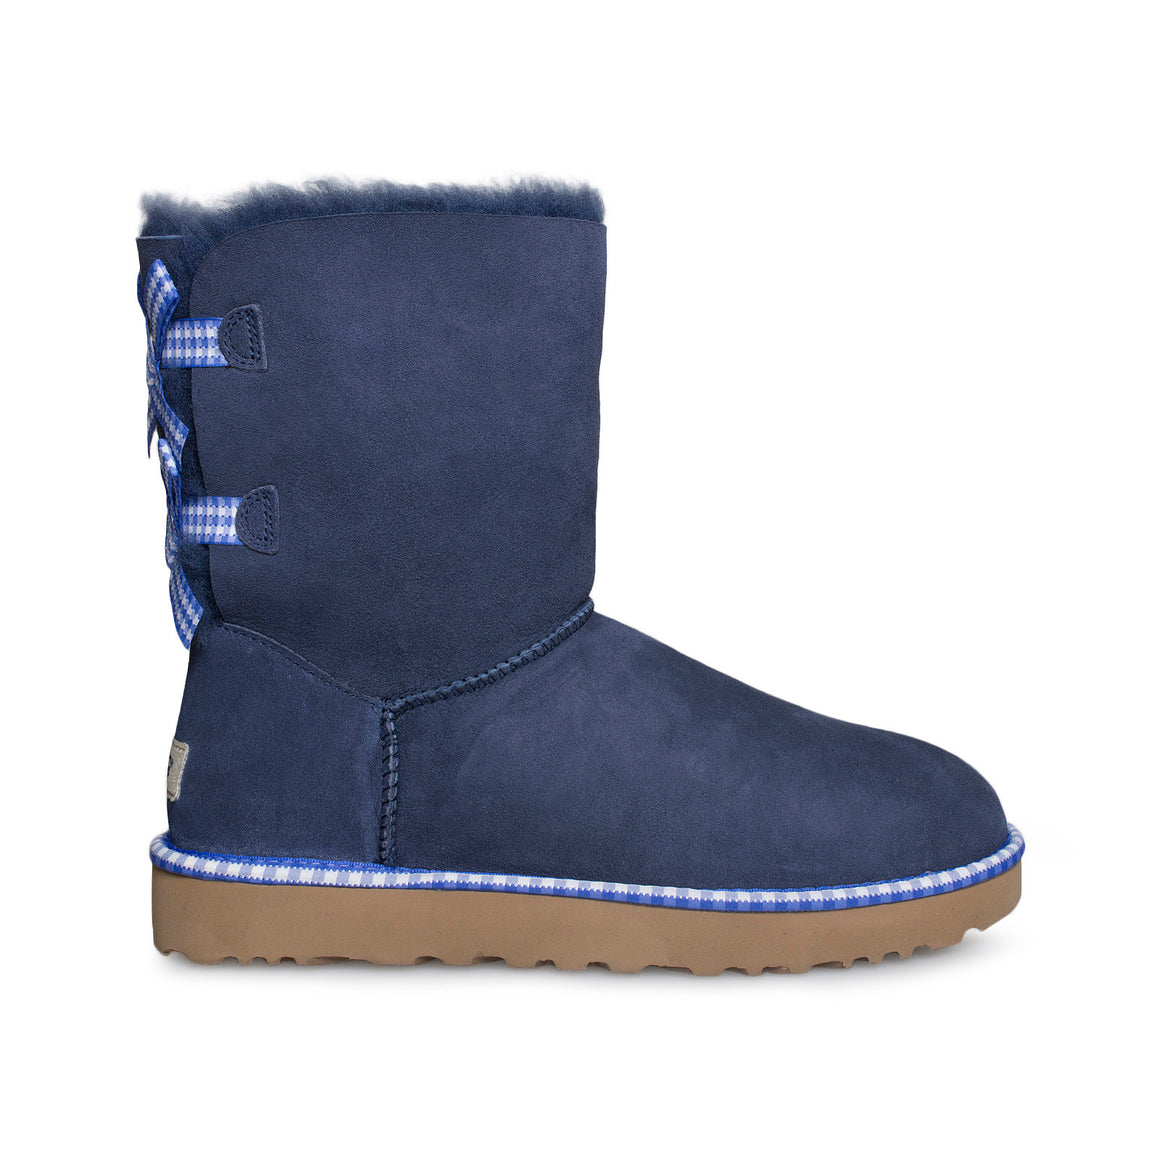 UGG Bailey Bow Gingham Navy Boots - Women's